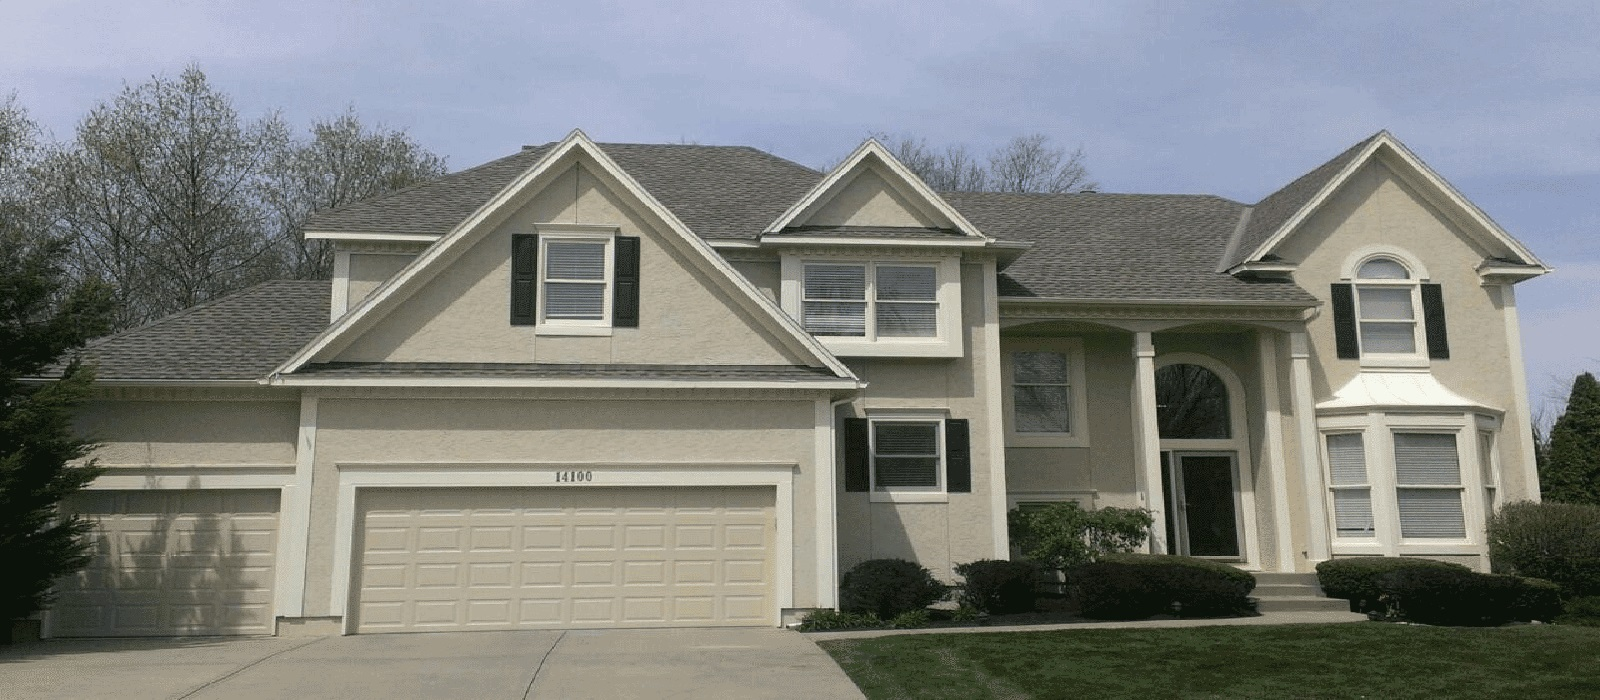 house painters near me 66061